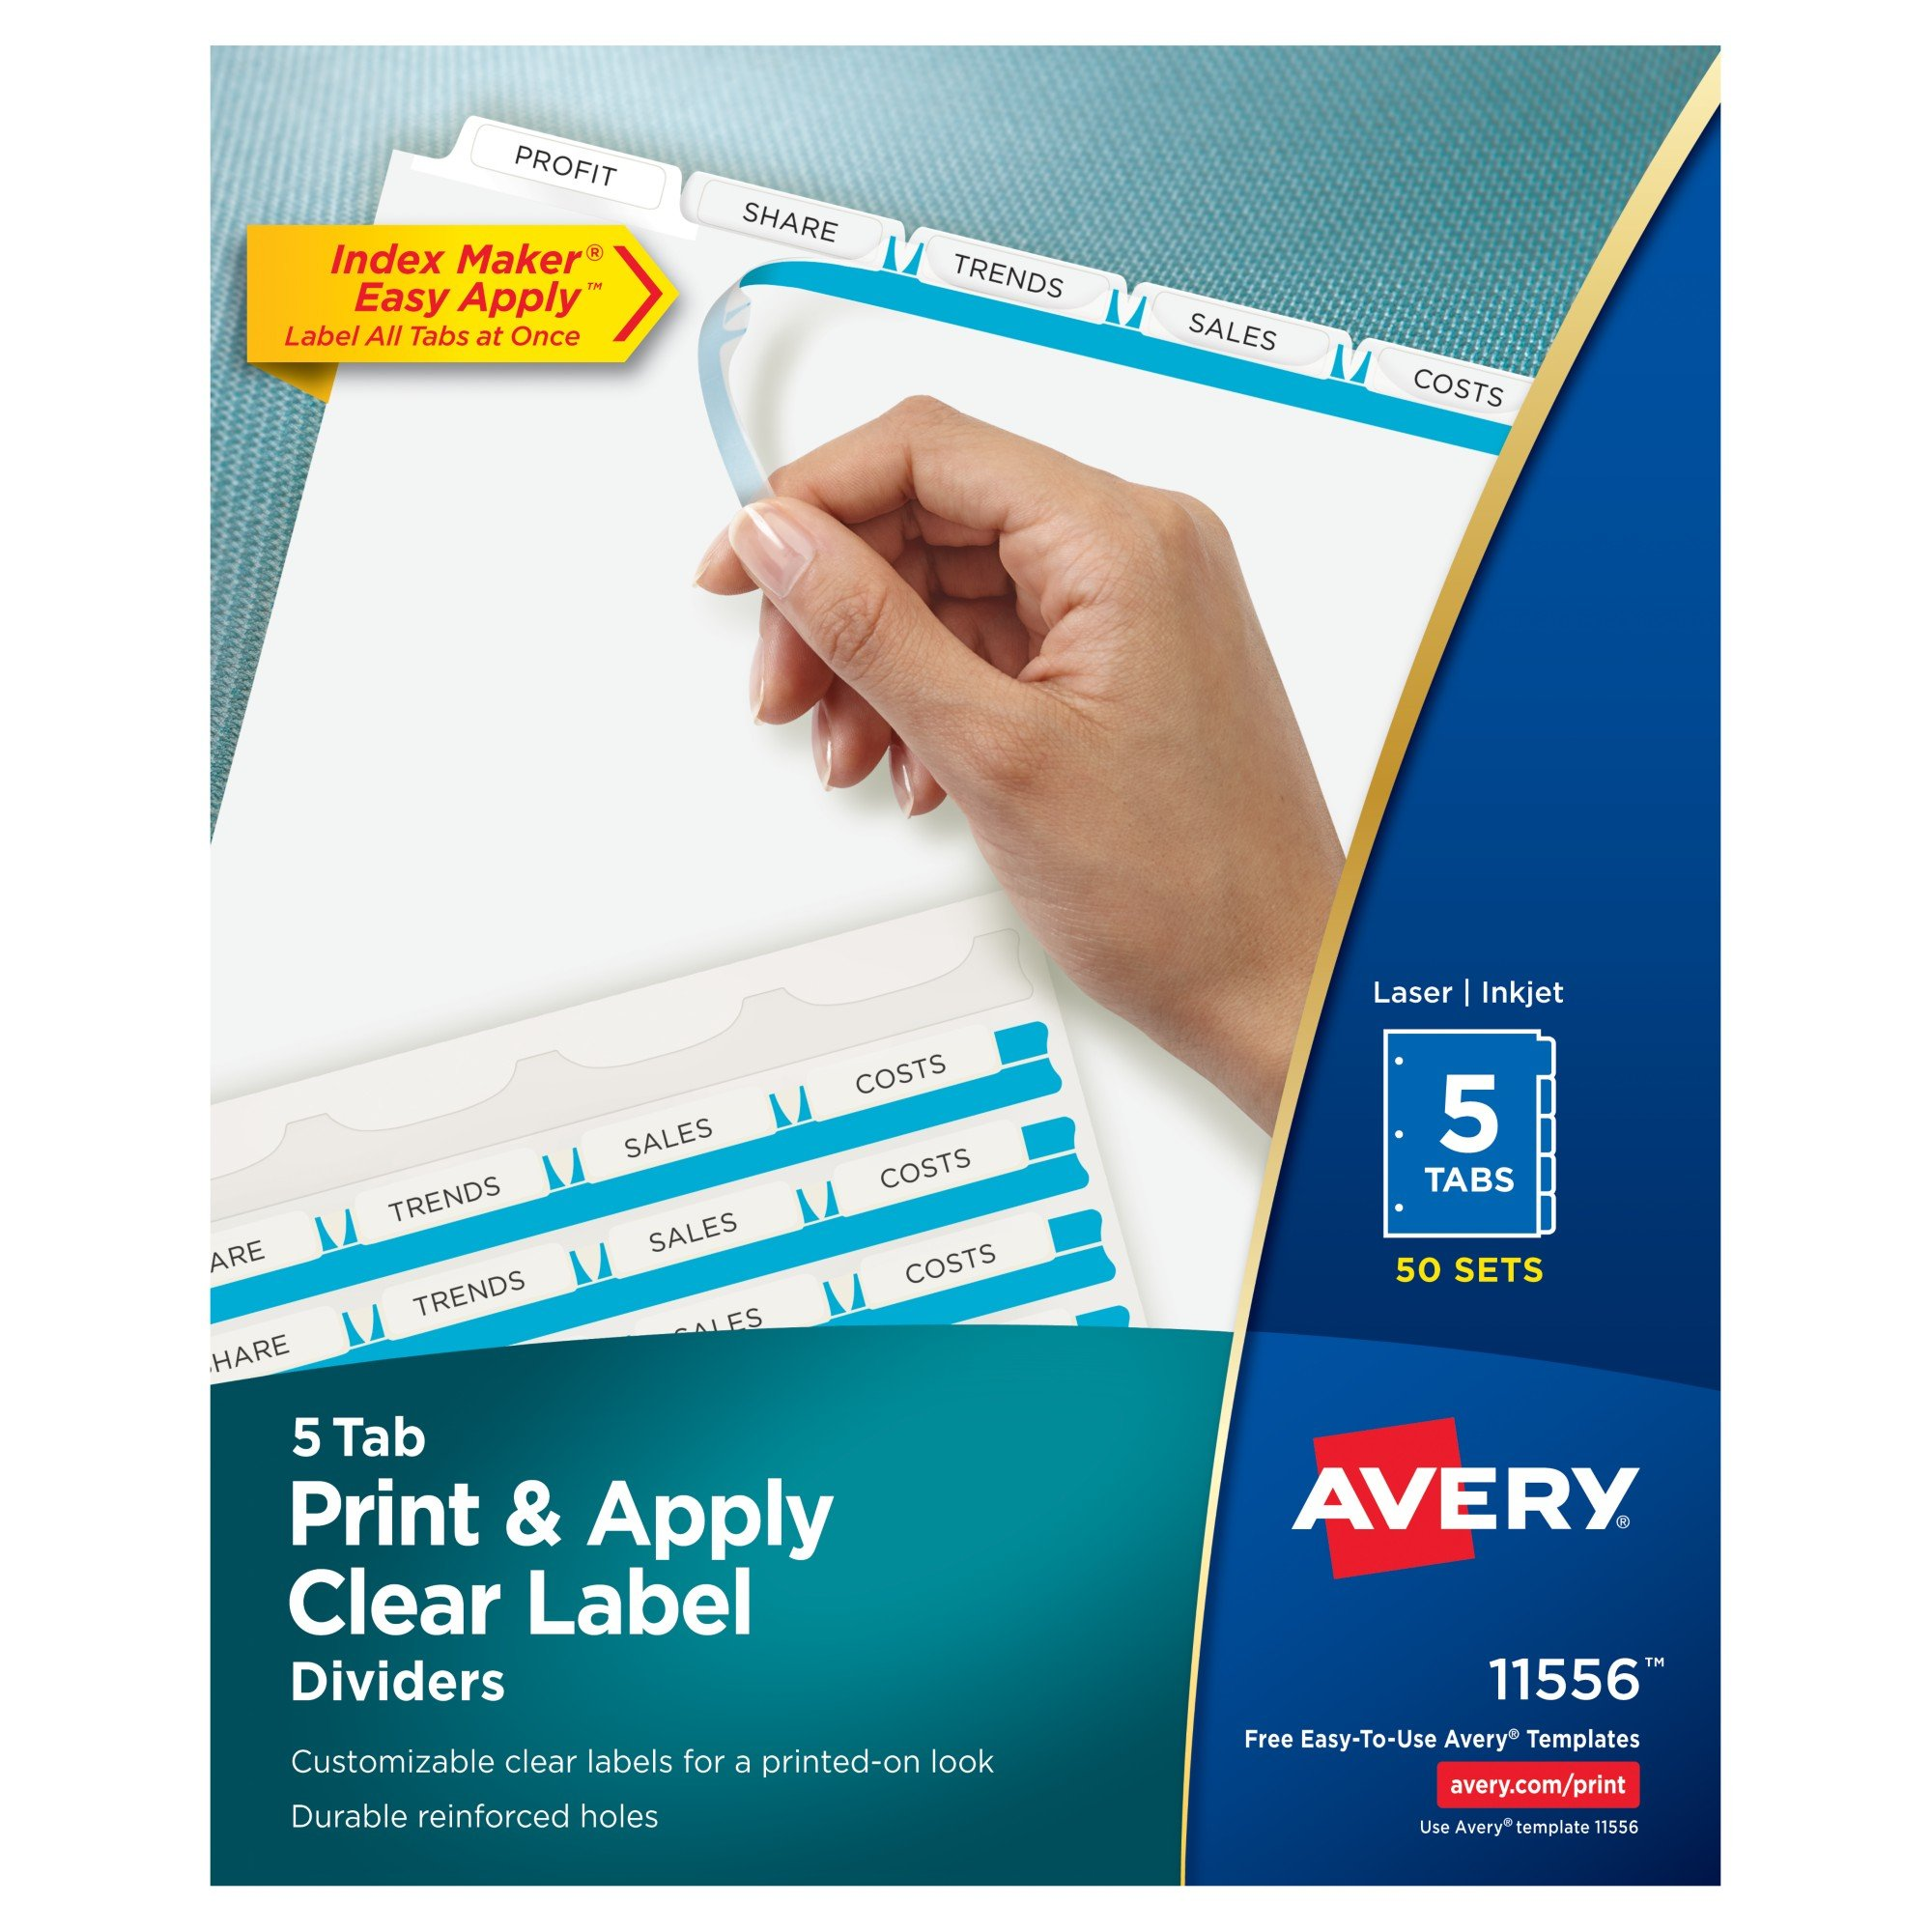 Avery Print & Apply Clear Label Dividers, Index Maker Easy Apply Printable Label Strip, 5 White Tabs, 50 Sets, Case Pack of 4 (11556)